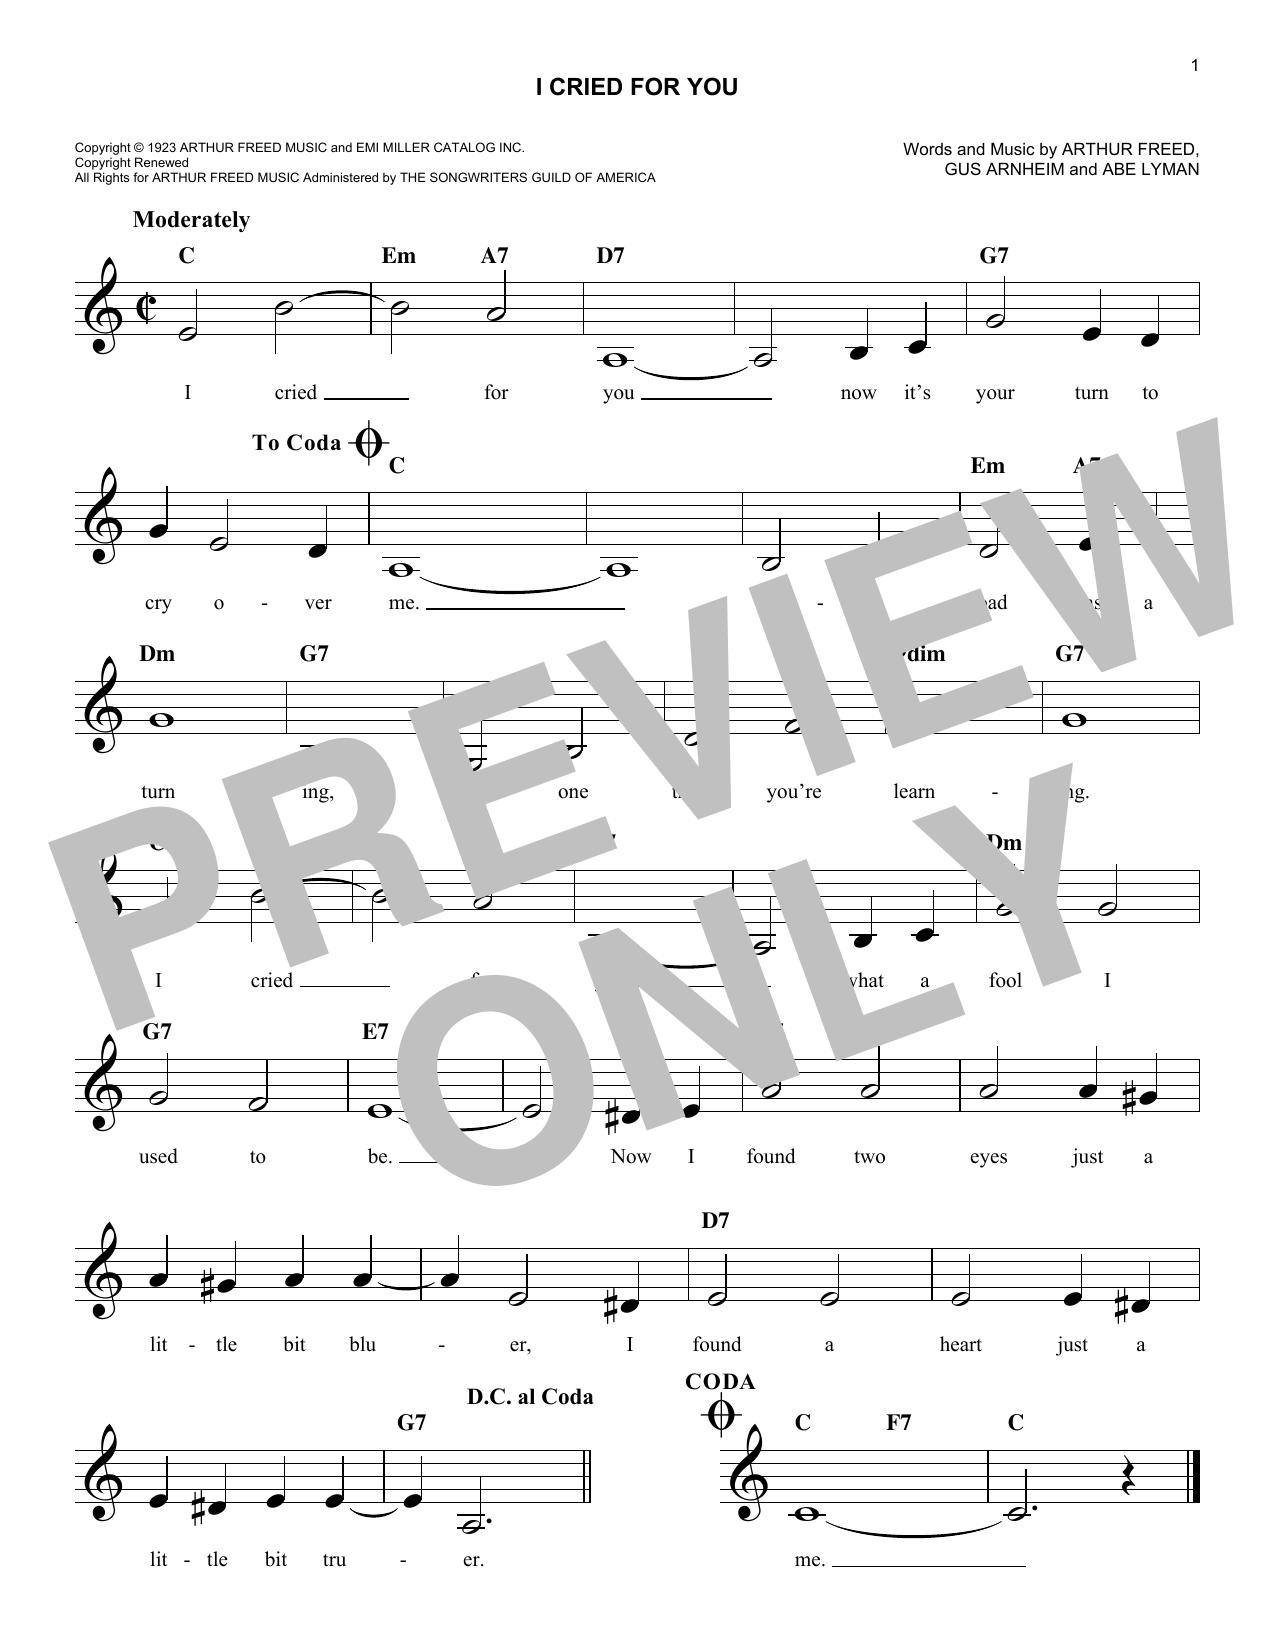 Gus Arnheim I Cried For You sheet music notes and chords. Download Printable PDF.